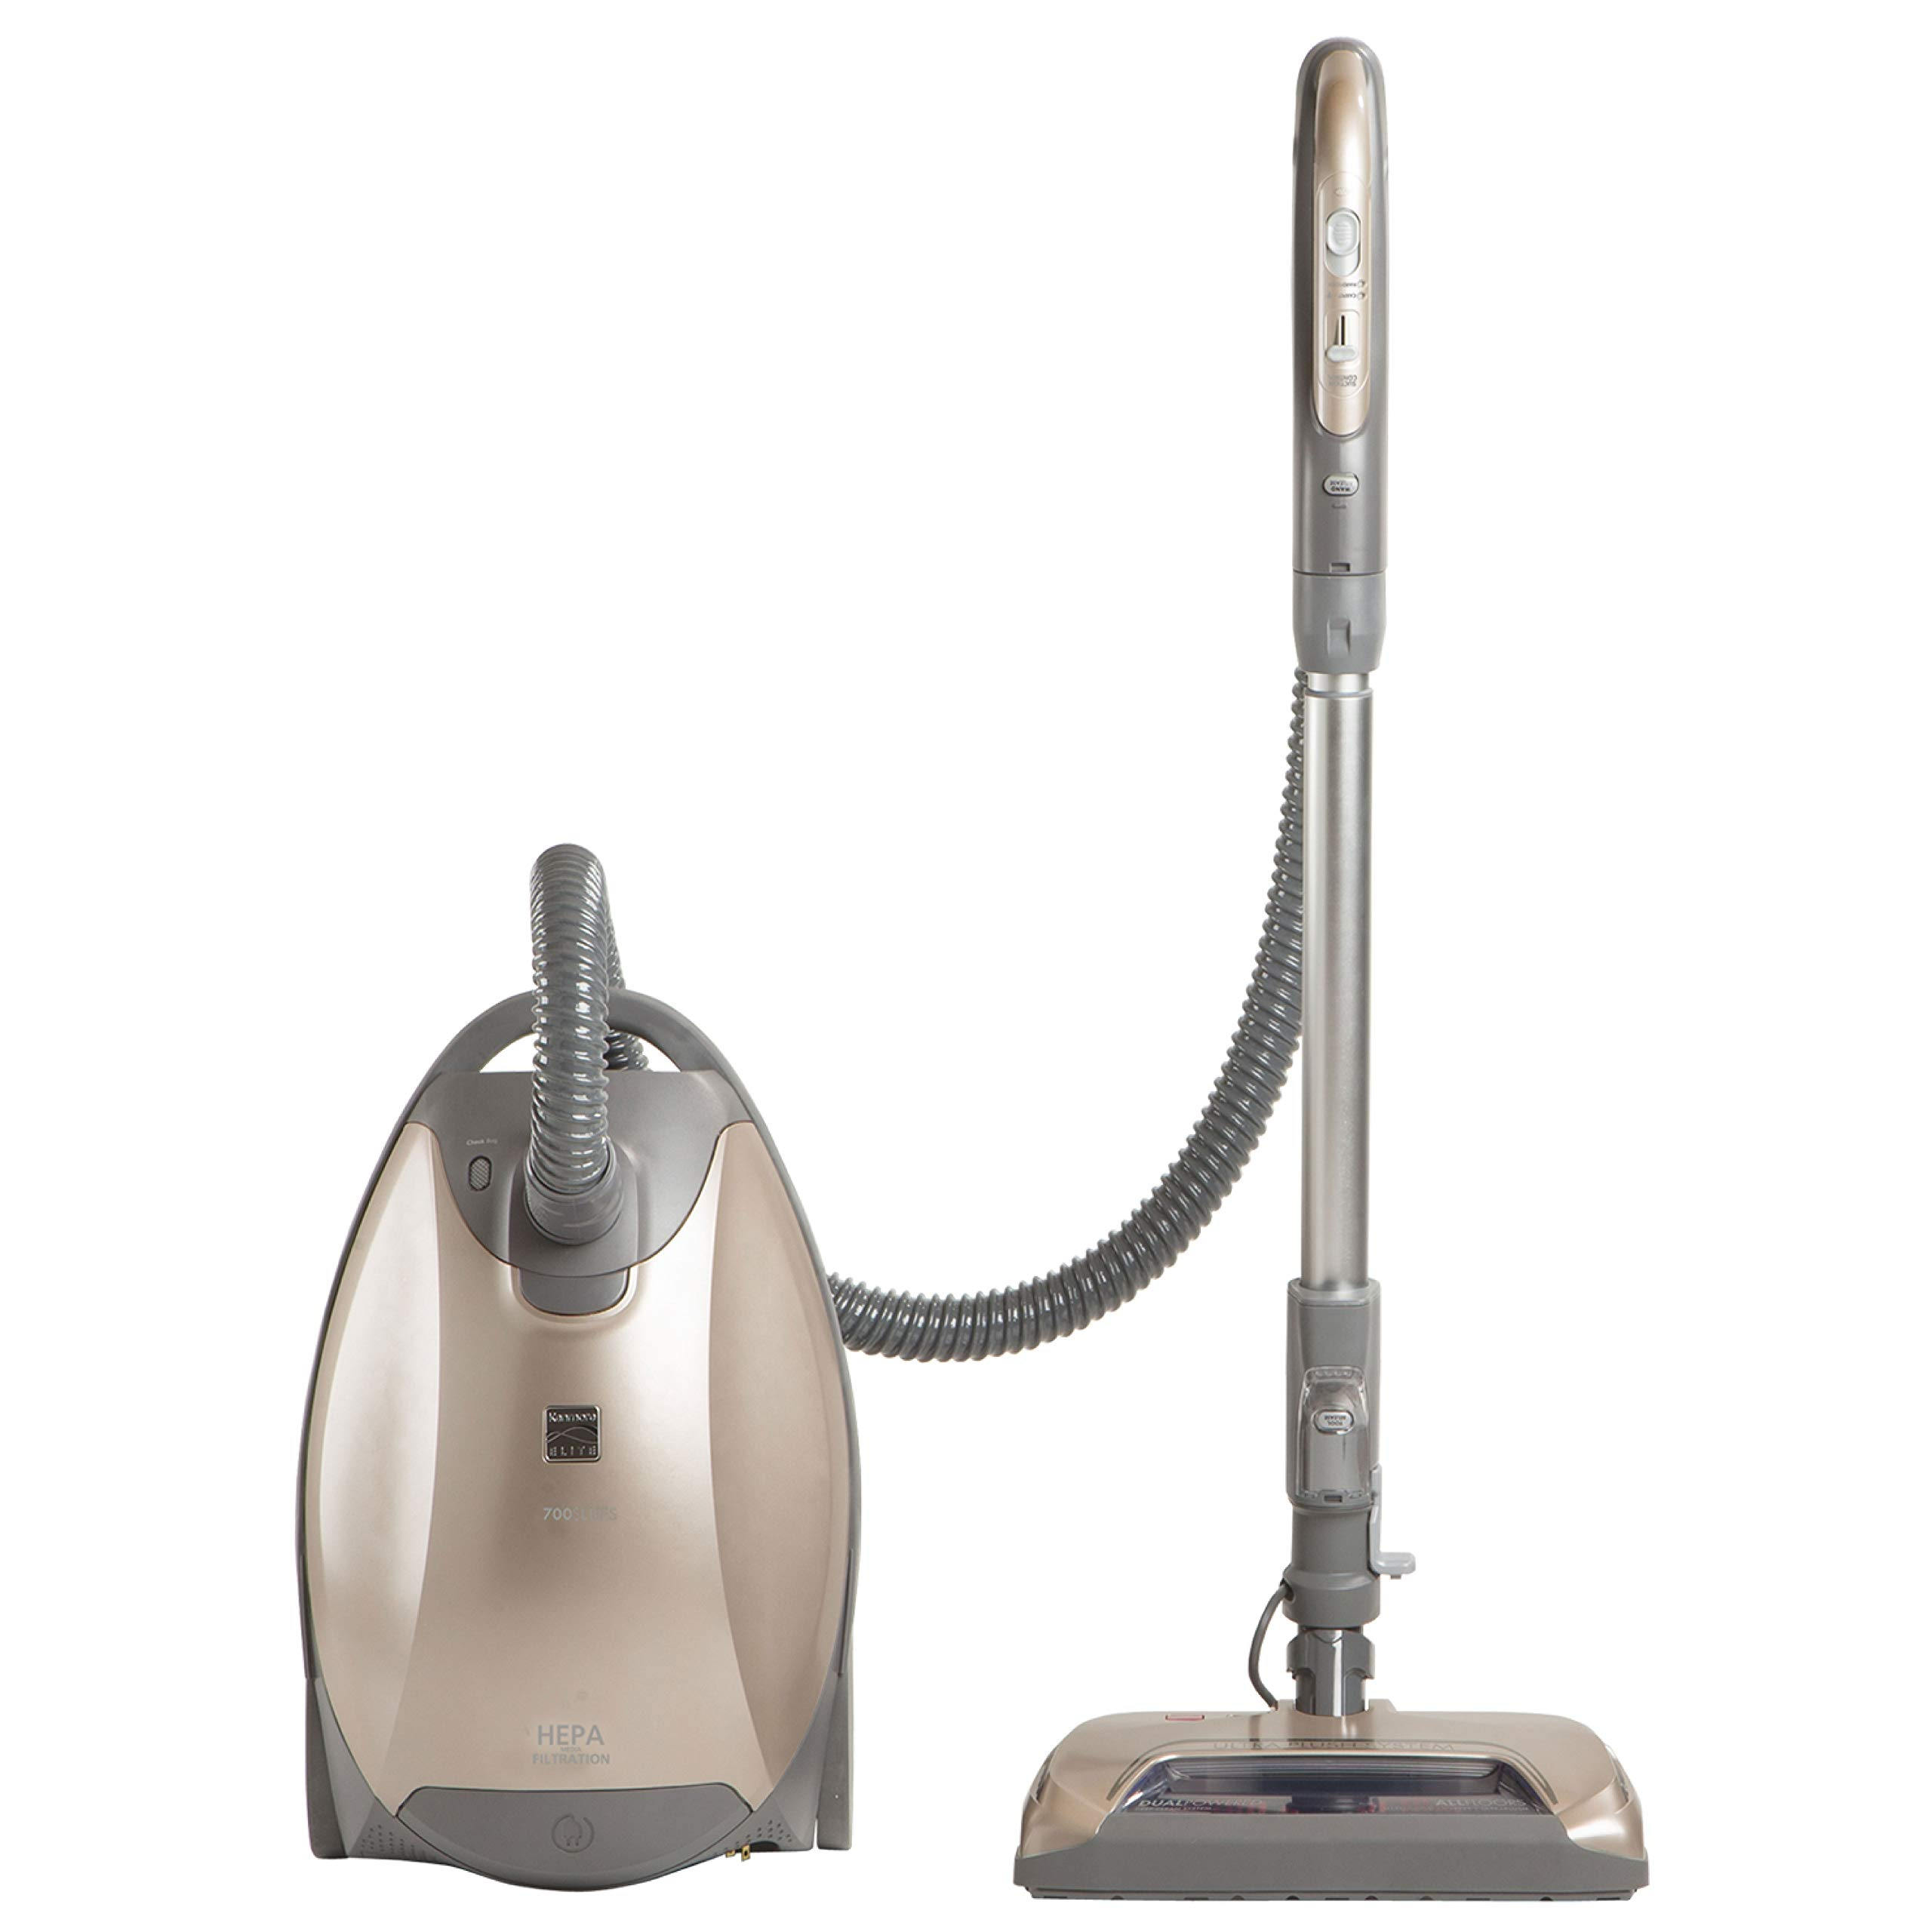 Kenmore Elite 81714 Pet Friendly Ultra Plush Lightweight Bagged Canister Vacuum with Pet PowerMate, HEPA, Extended Telescoping Wand, Retractable Cord,  and 3 Cleaning Tools-Champagne by Kenmore